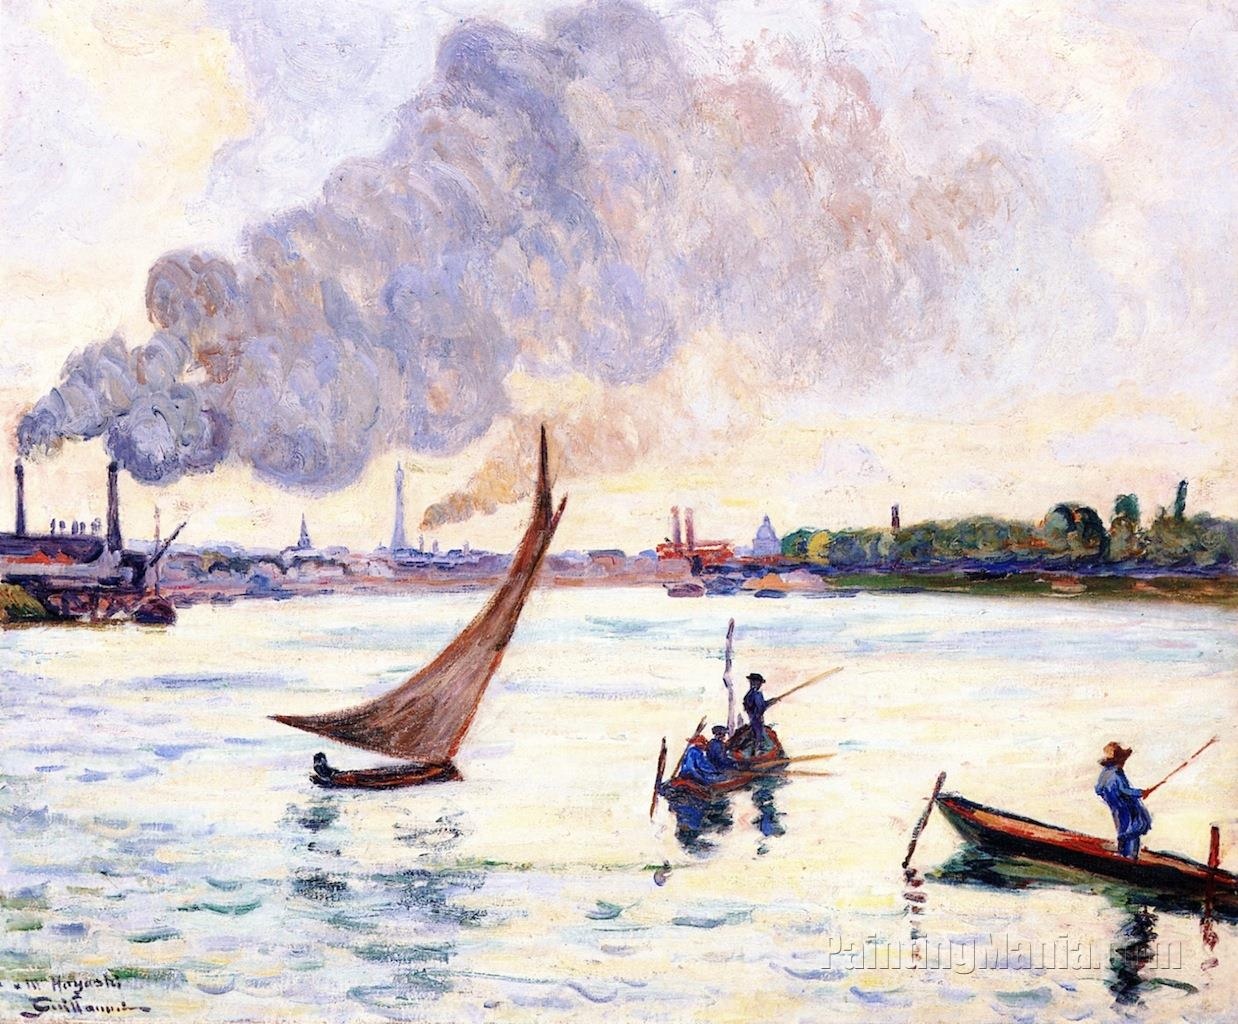 Fishermen and Sailboat - The Confluence of the Seine and the Marne